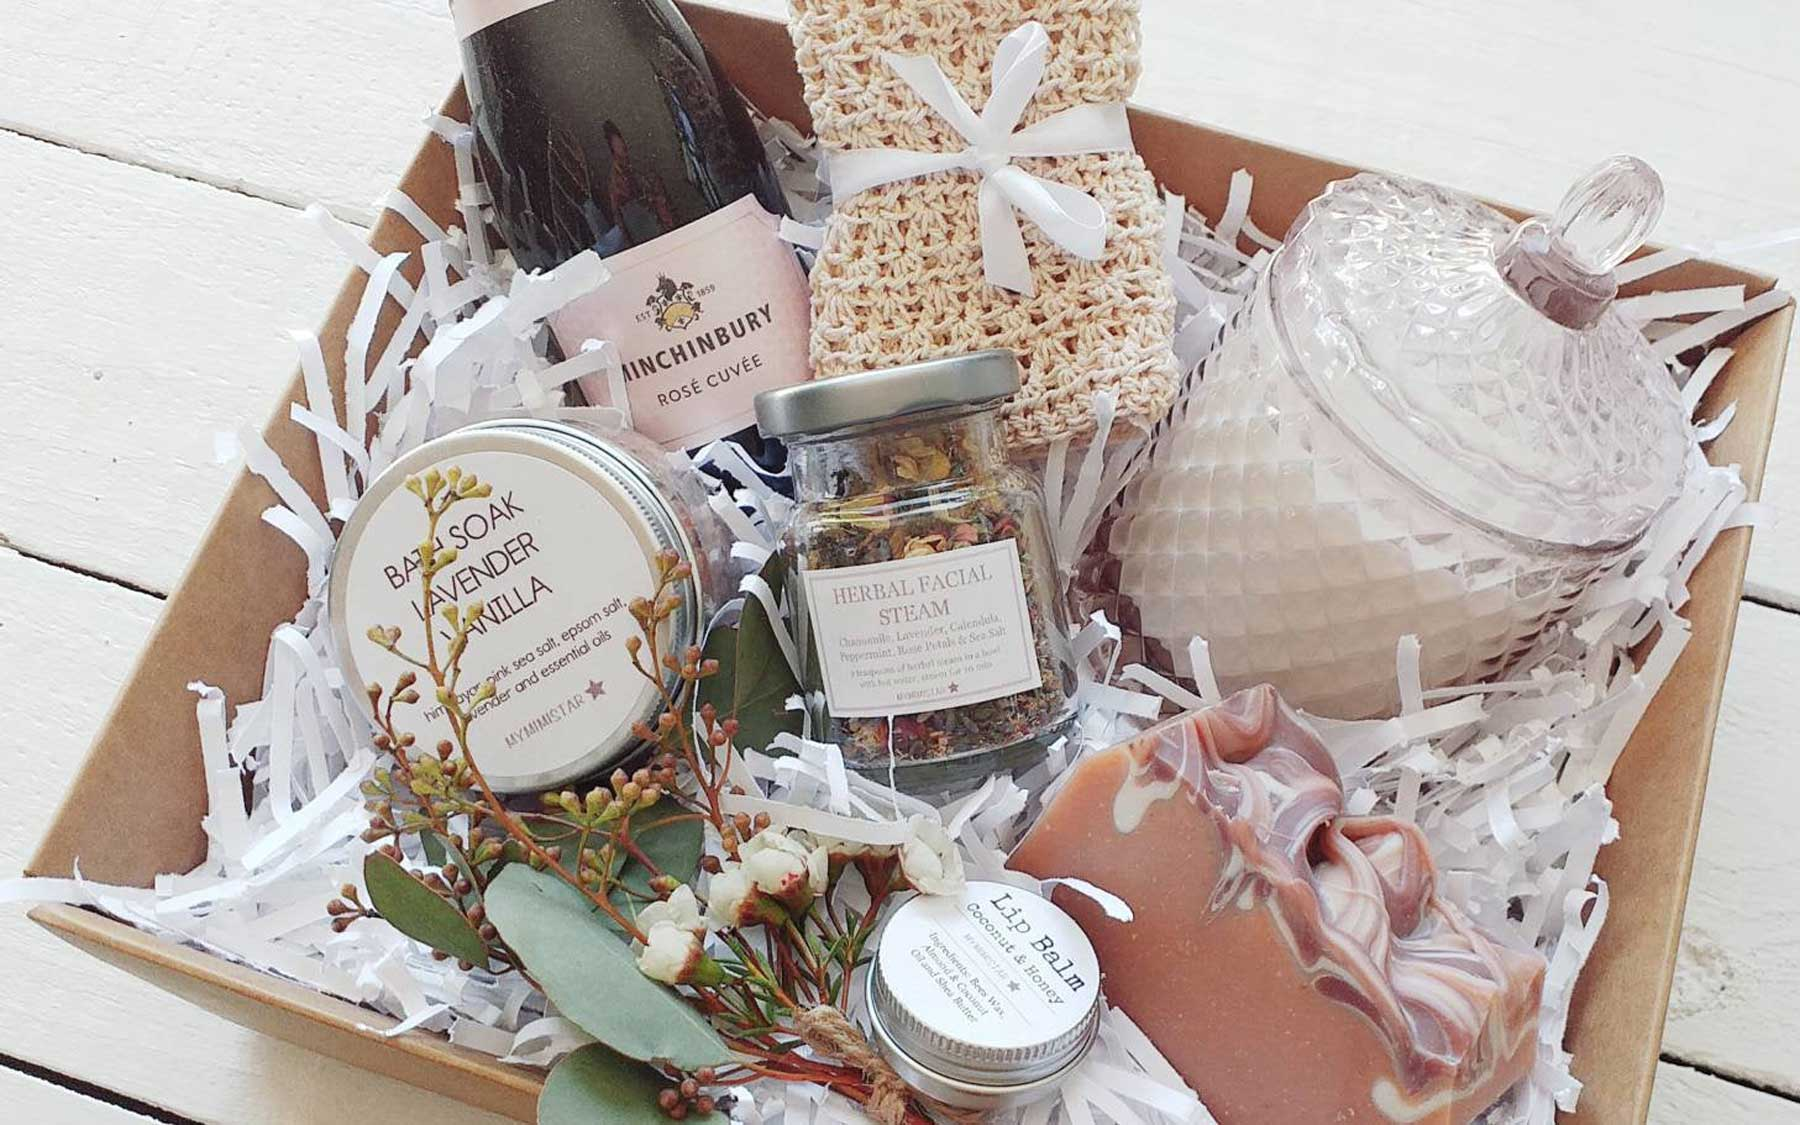 Etsy care package of wine and spa items